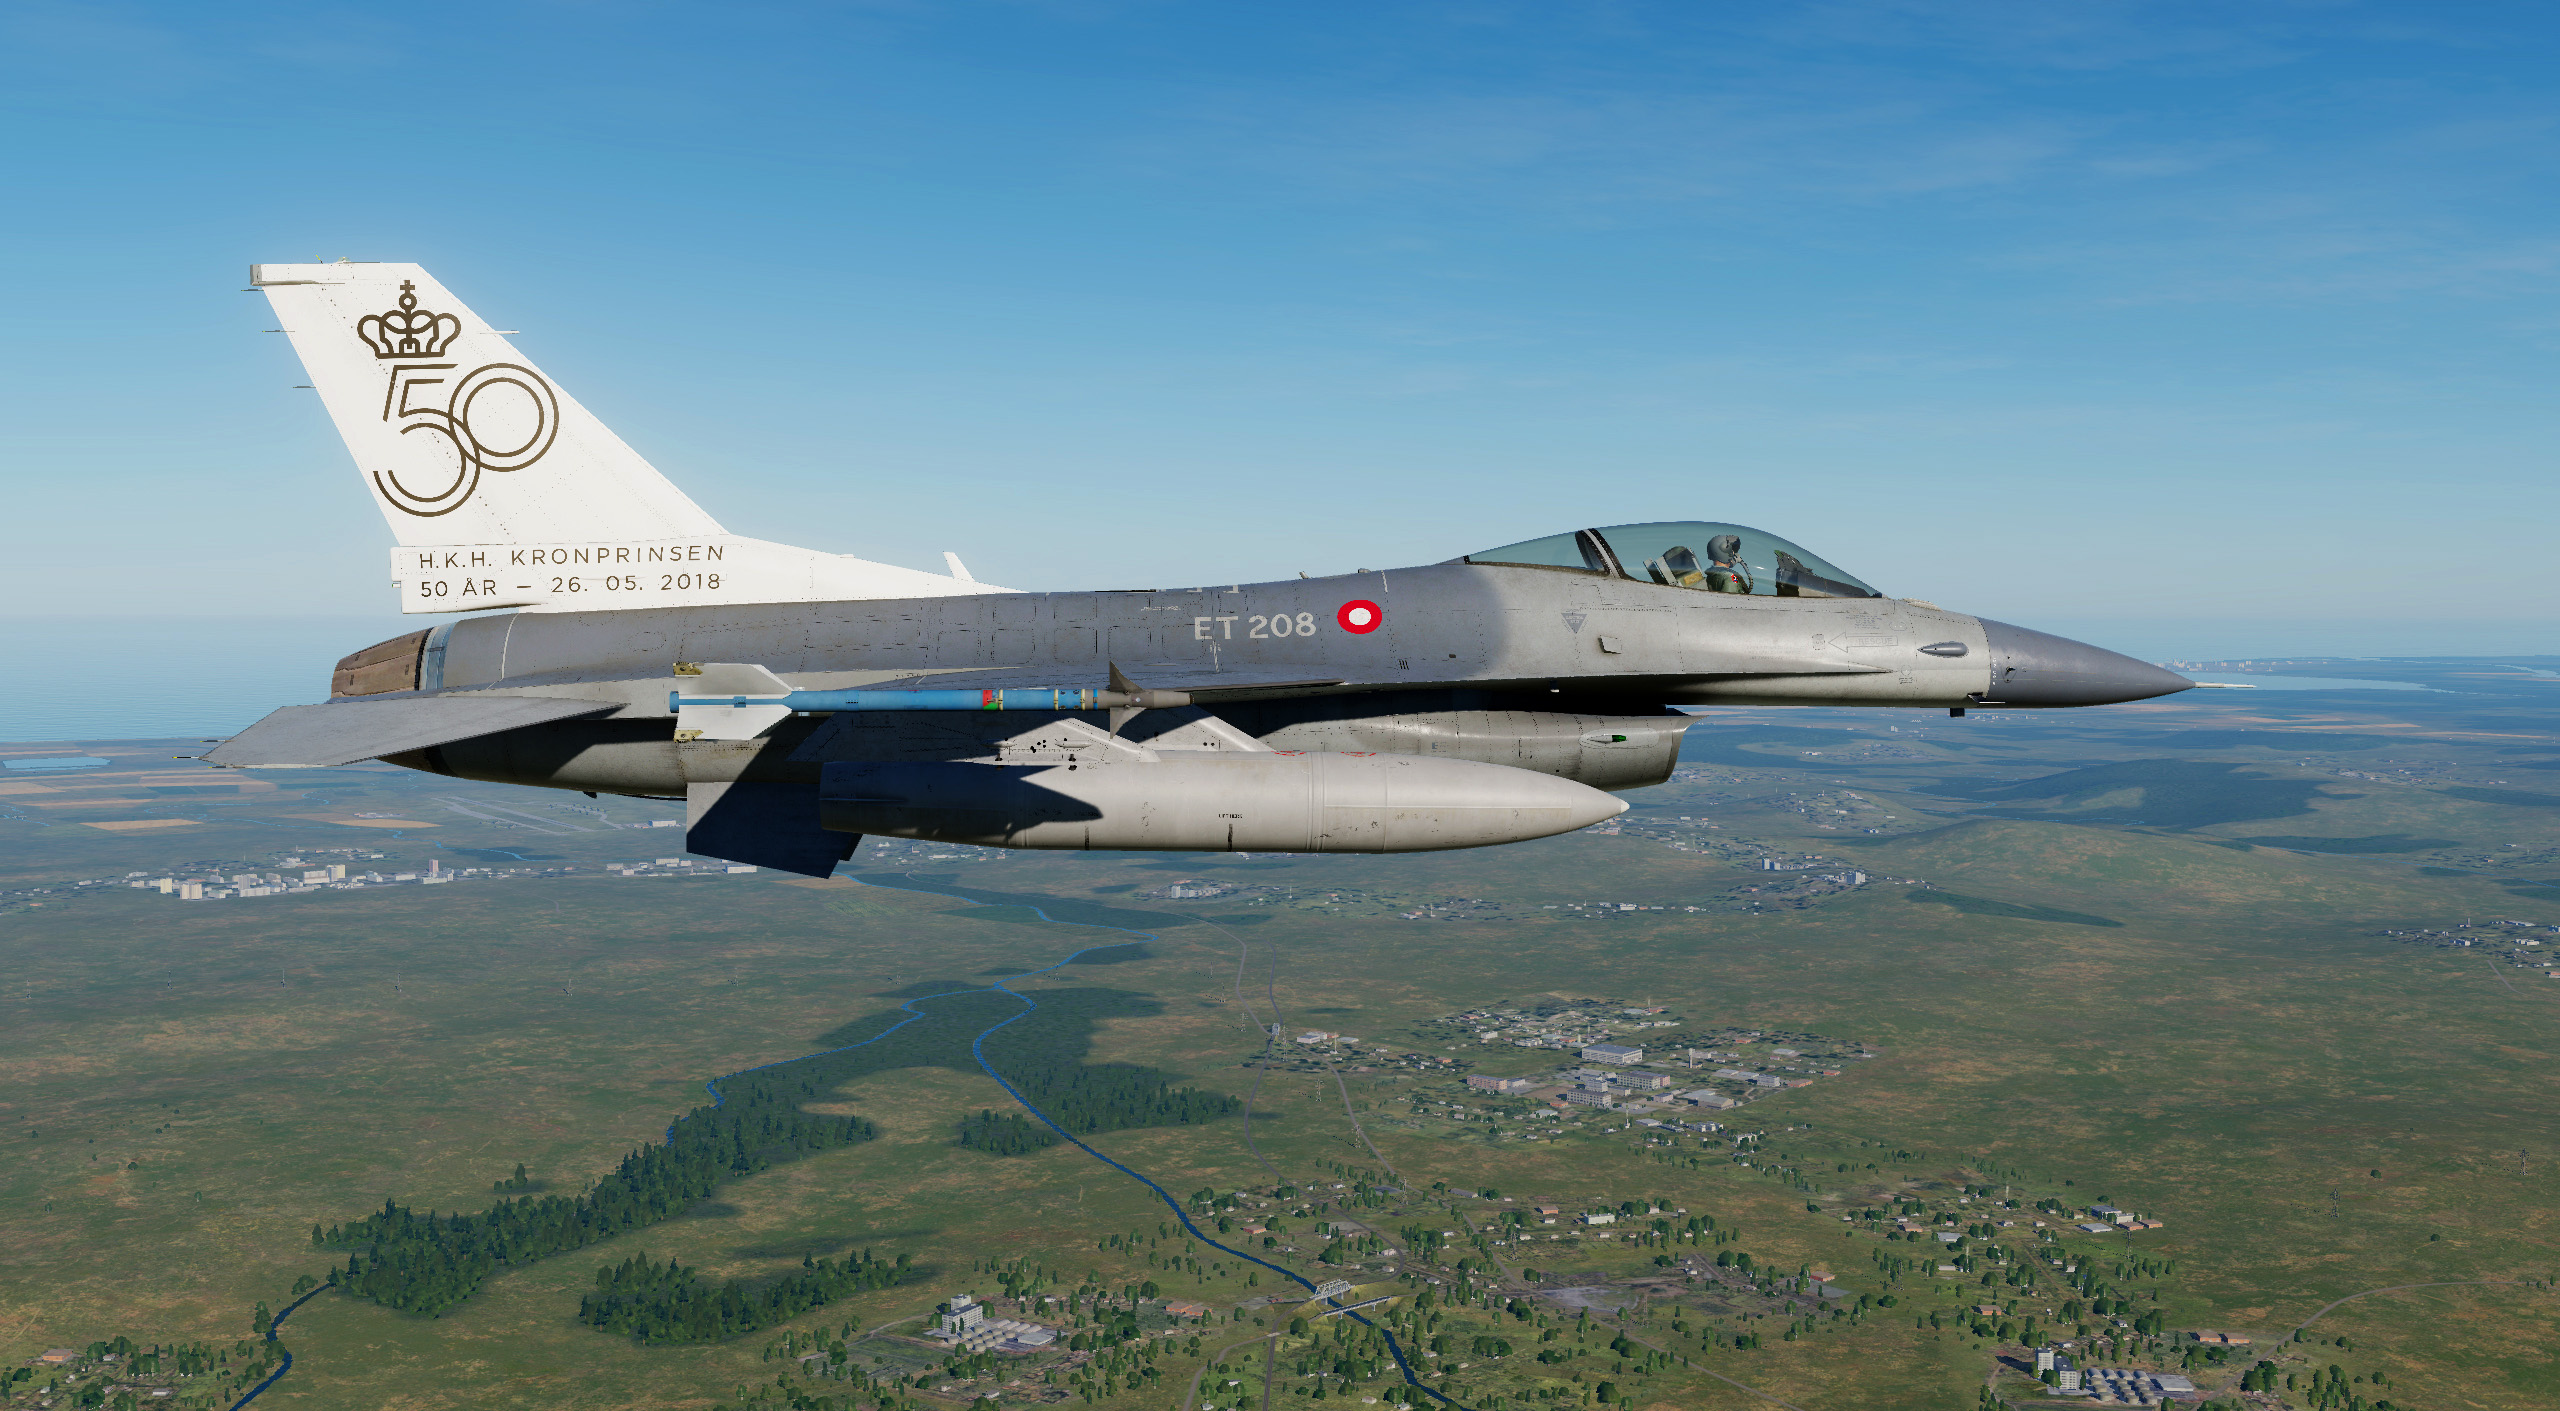 RDAF F-16BM Fighting Falcon ET 208 HKH Kronprinsen 50 years